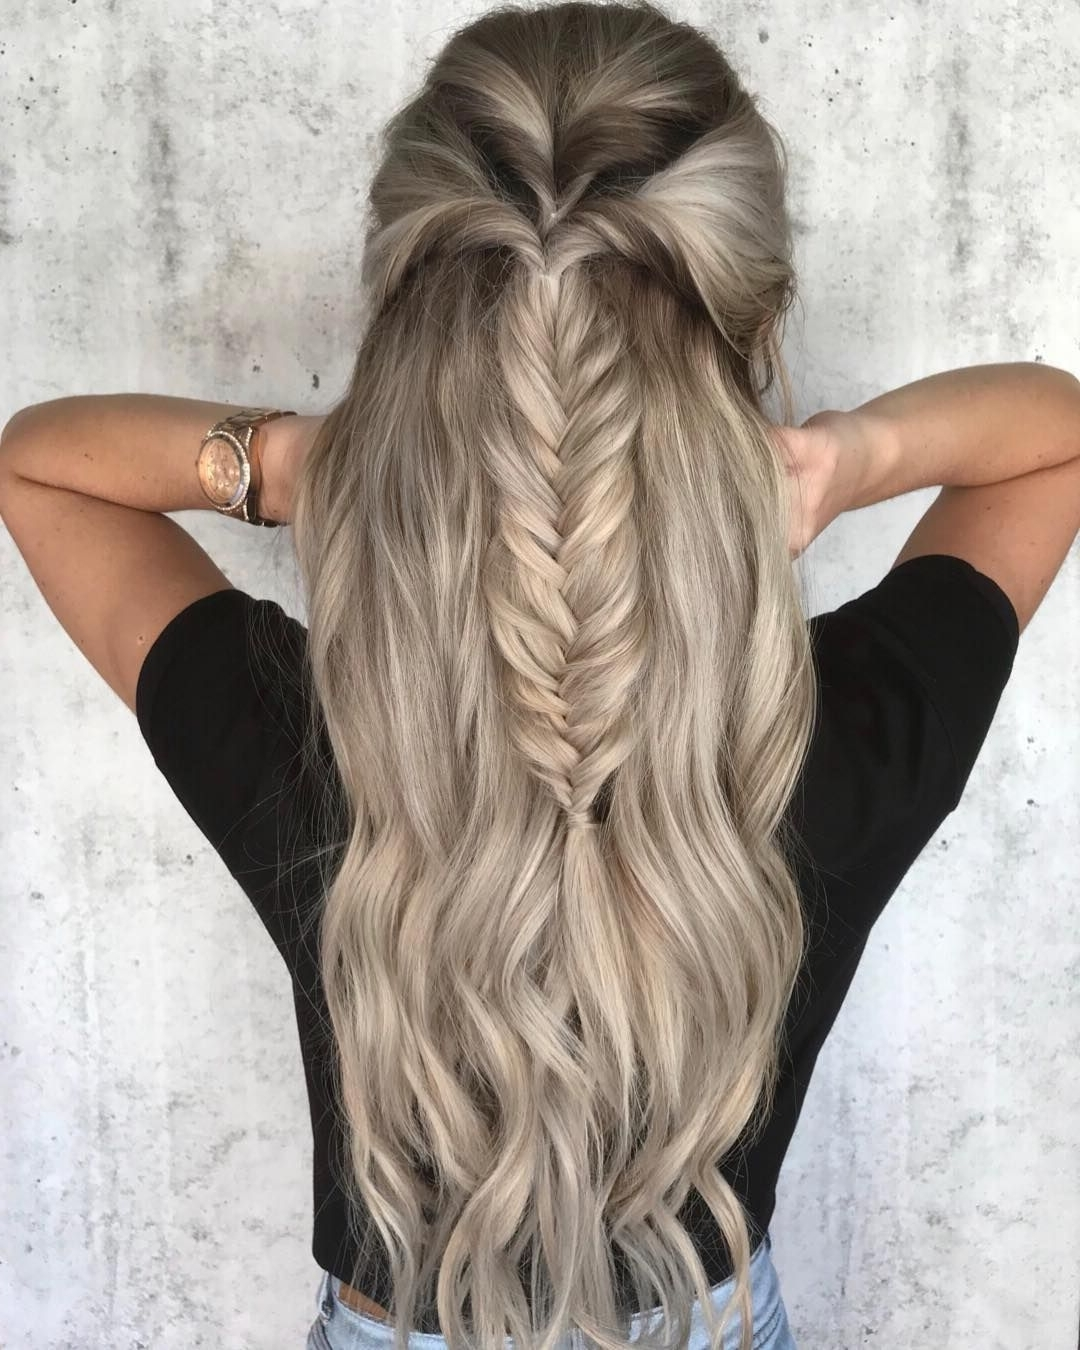 39 Trendy + Messy & Chic Braided Hairstyles (View 2 of 15)